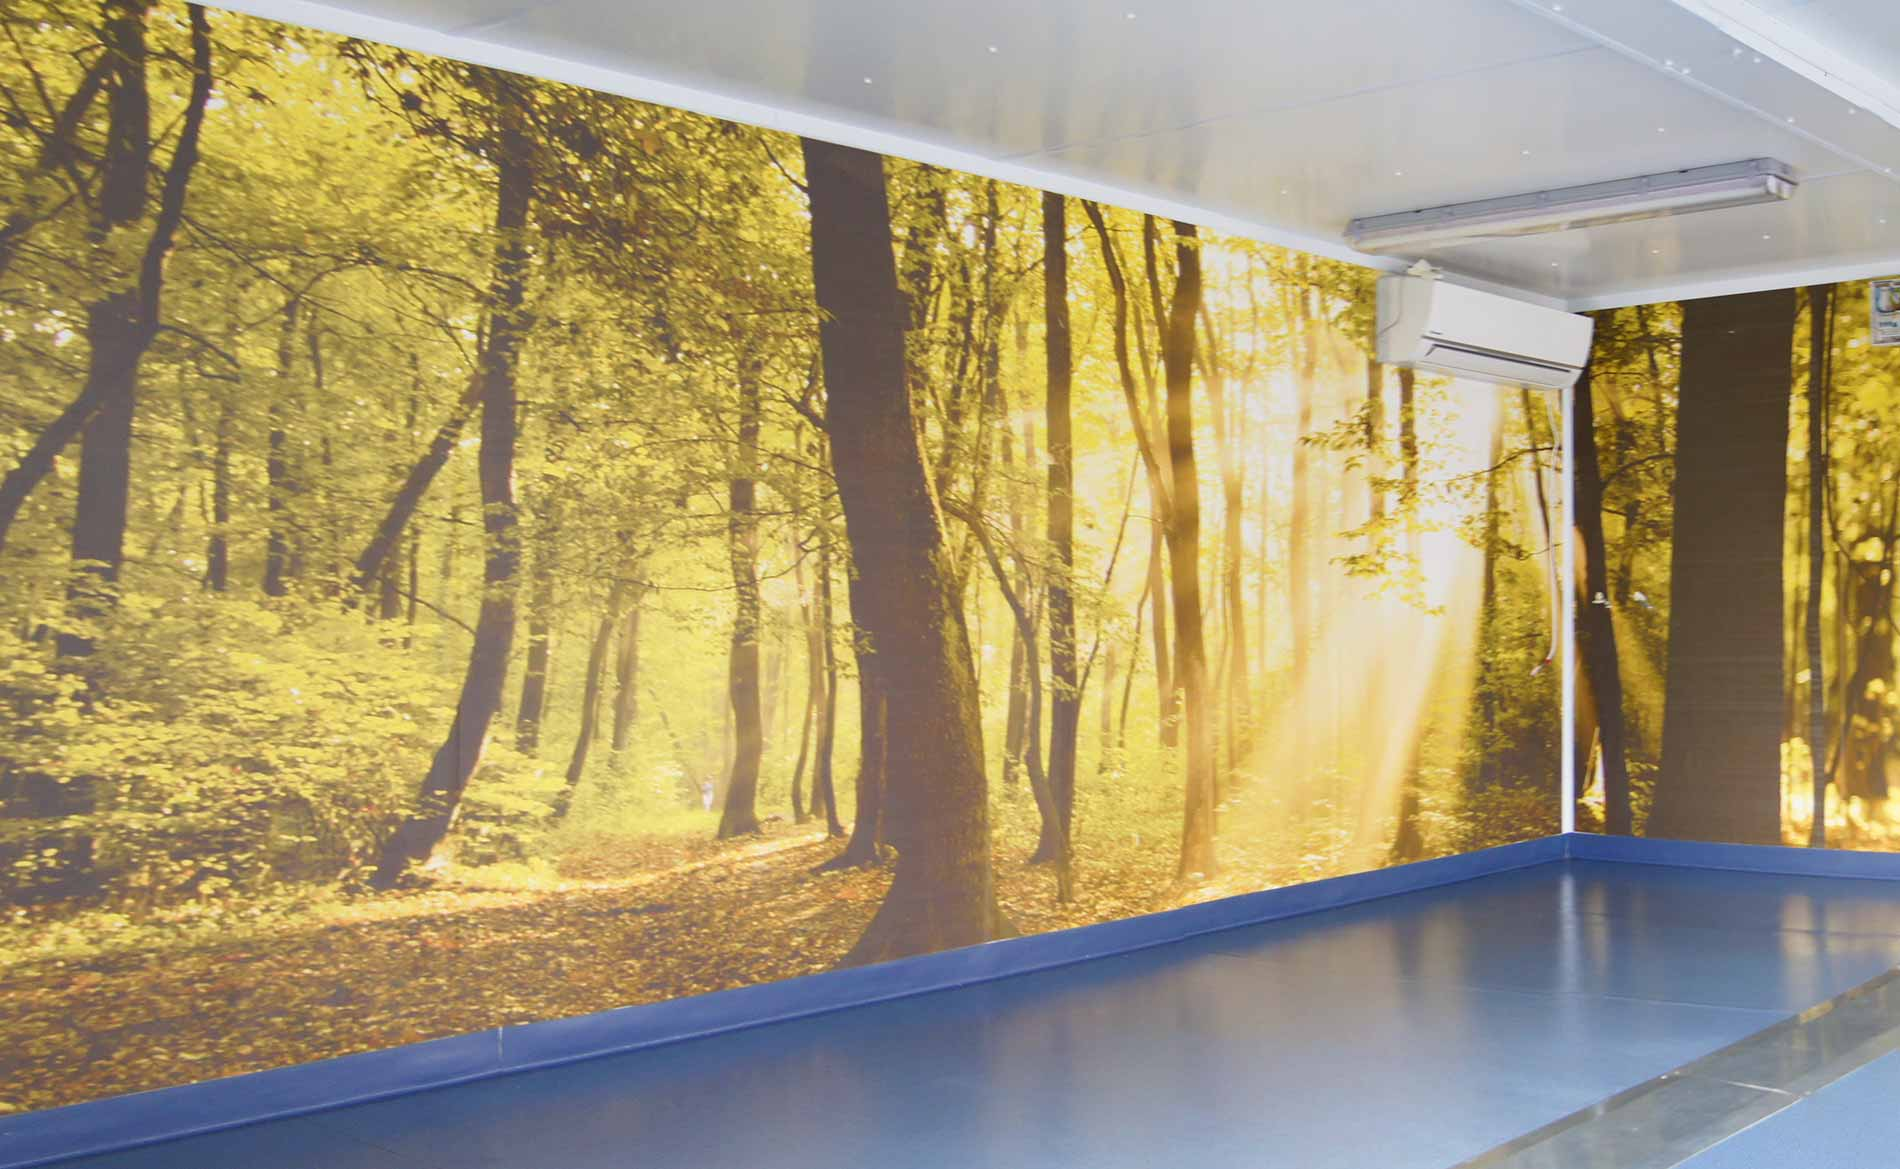 Wallpaper & Coverings, Chilthorne Domer Chrurch School, Signage, Stoke-on-Trent, Staffordshire